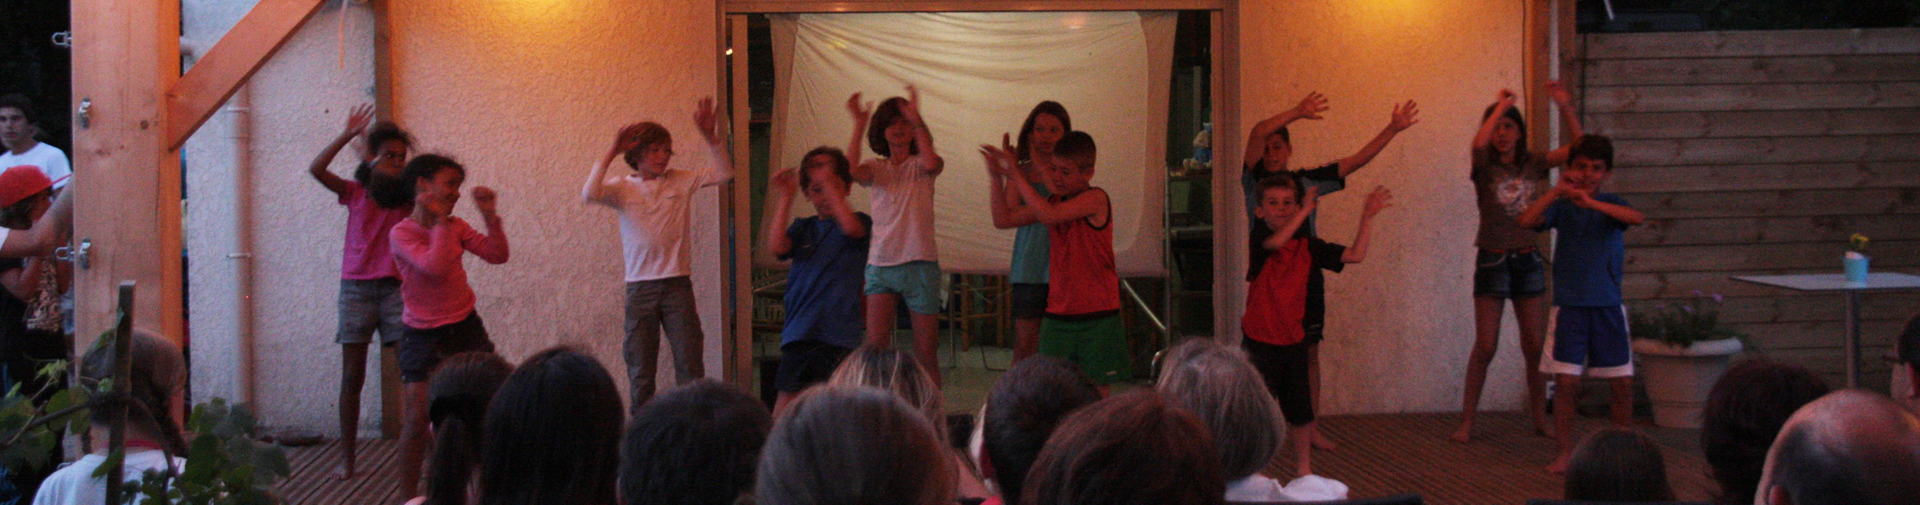 slide-spectacle-enfants-camping-oleron